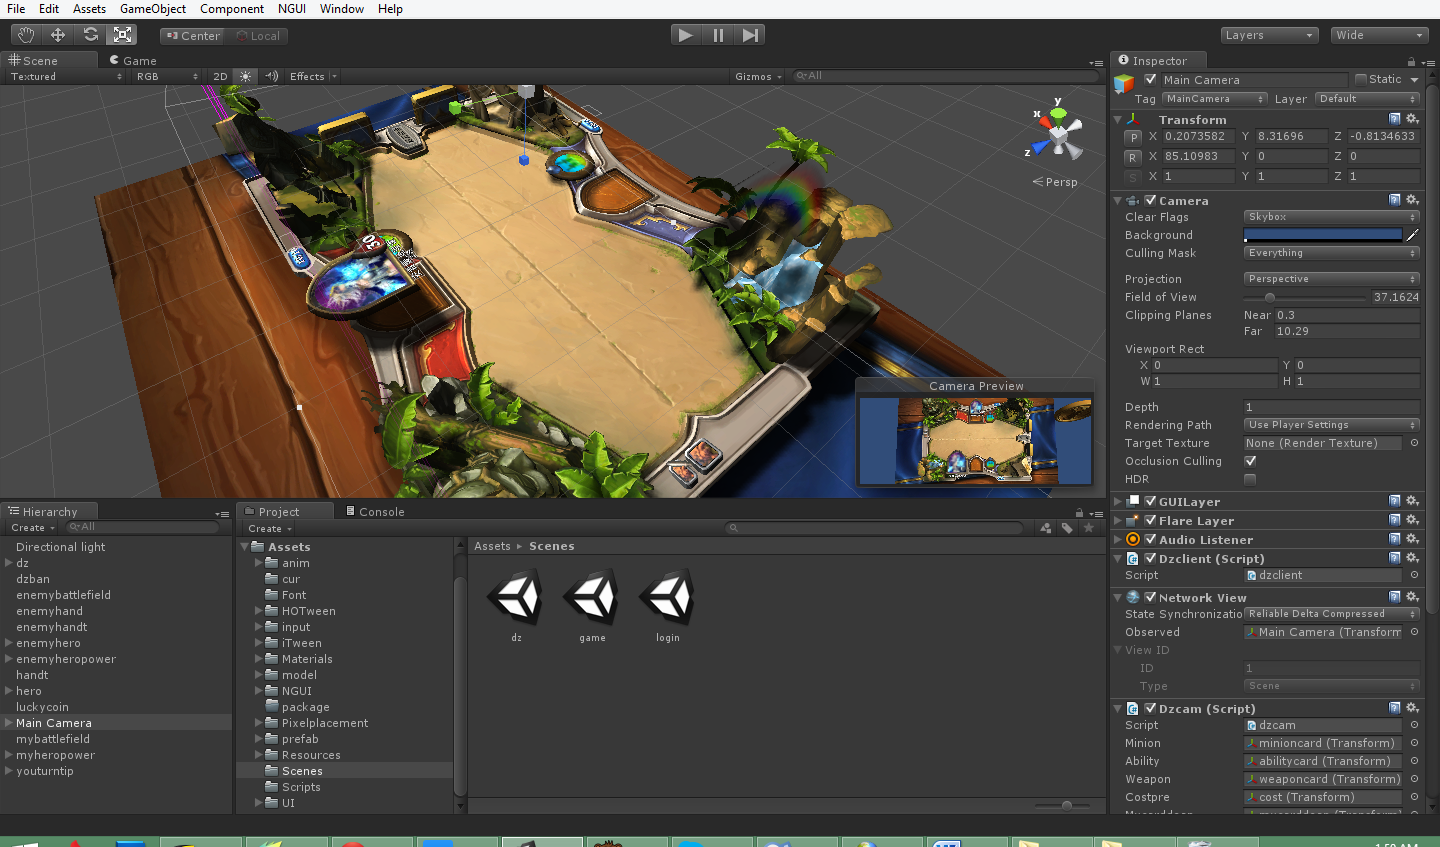 Blizzard's Hearthstone made with Unity   Unity 3d Tutorials